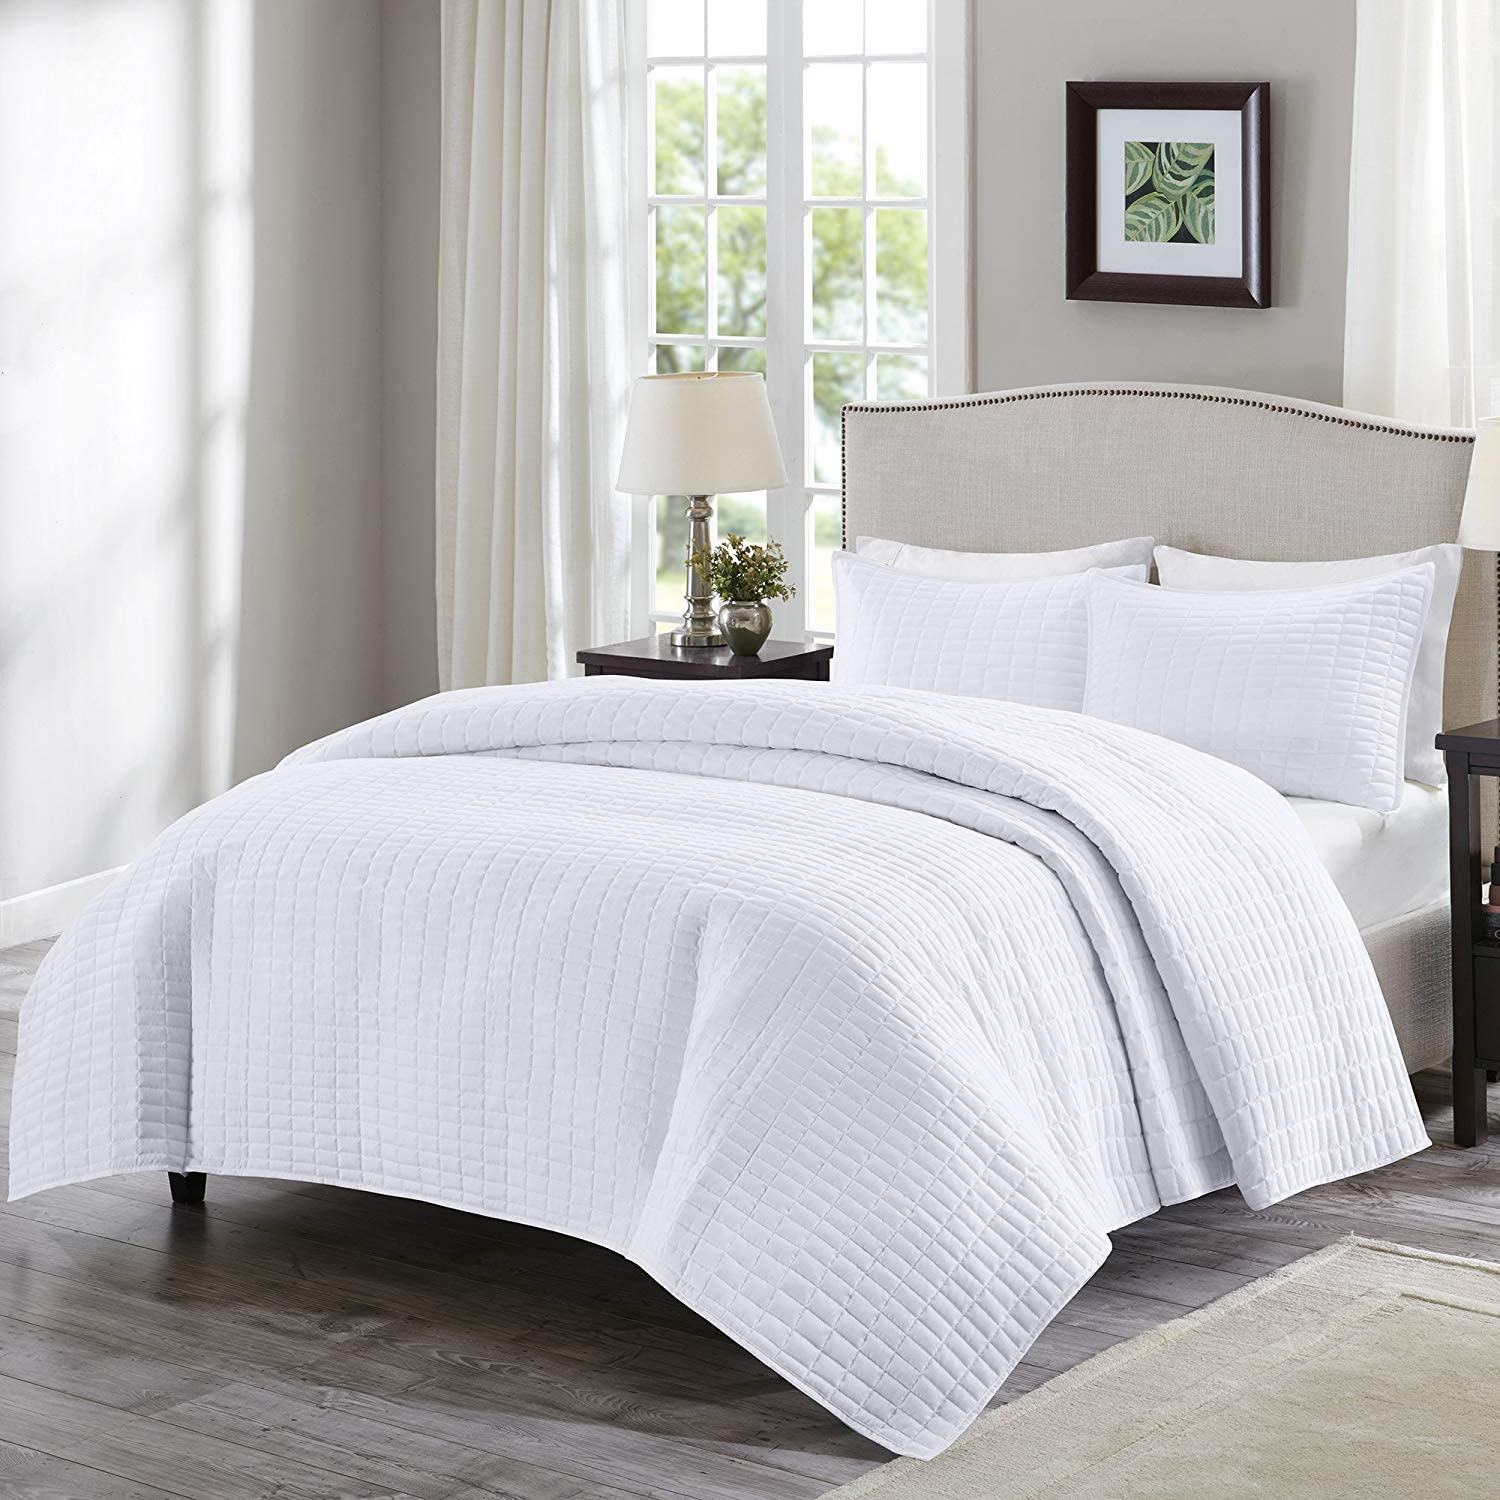 Comfort Spaces Kienna 3 Piece Quilt Coverlet Bedspread Ultra Soft Hypoallergenic Microfiber Stitched Bedding Set, Full Queen, White